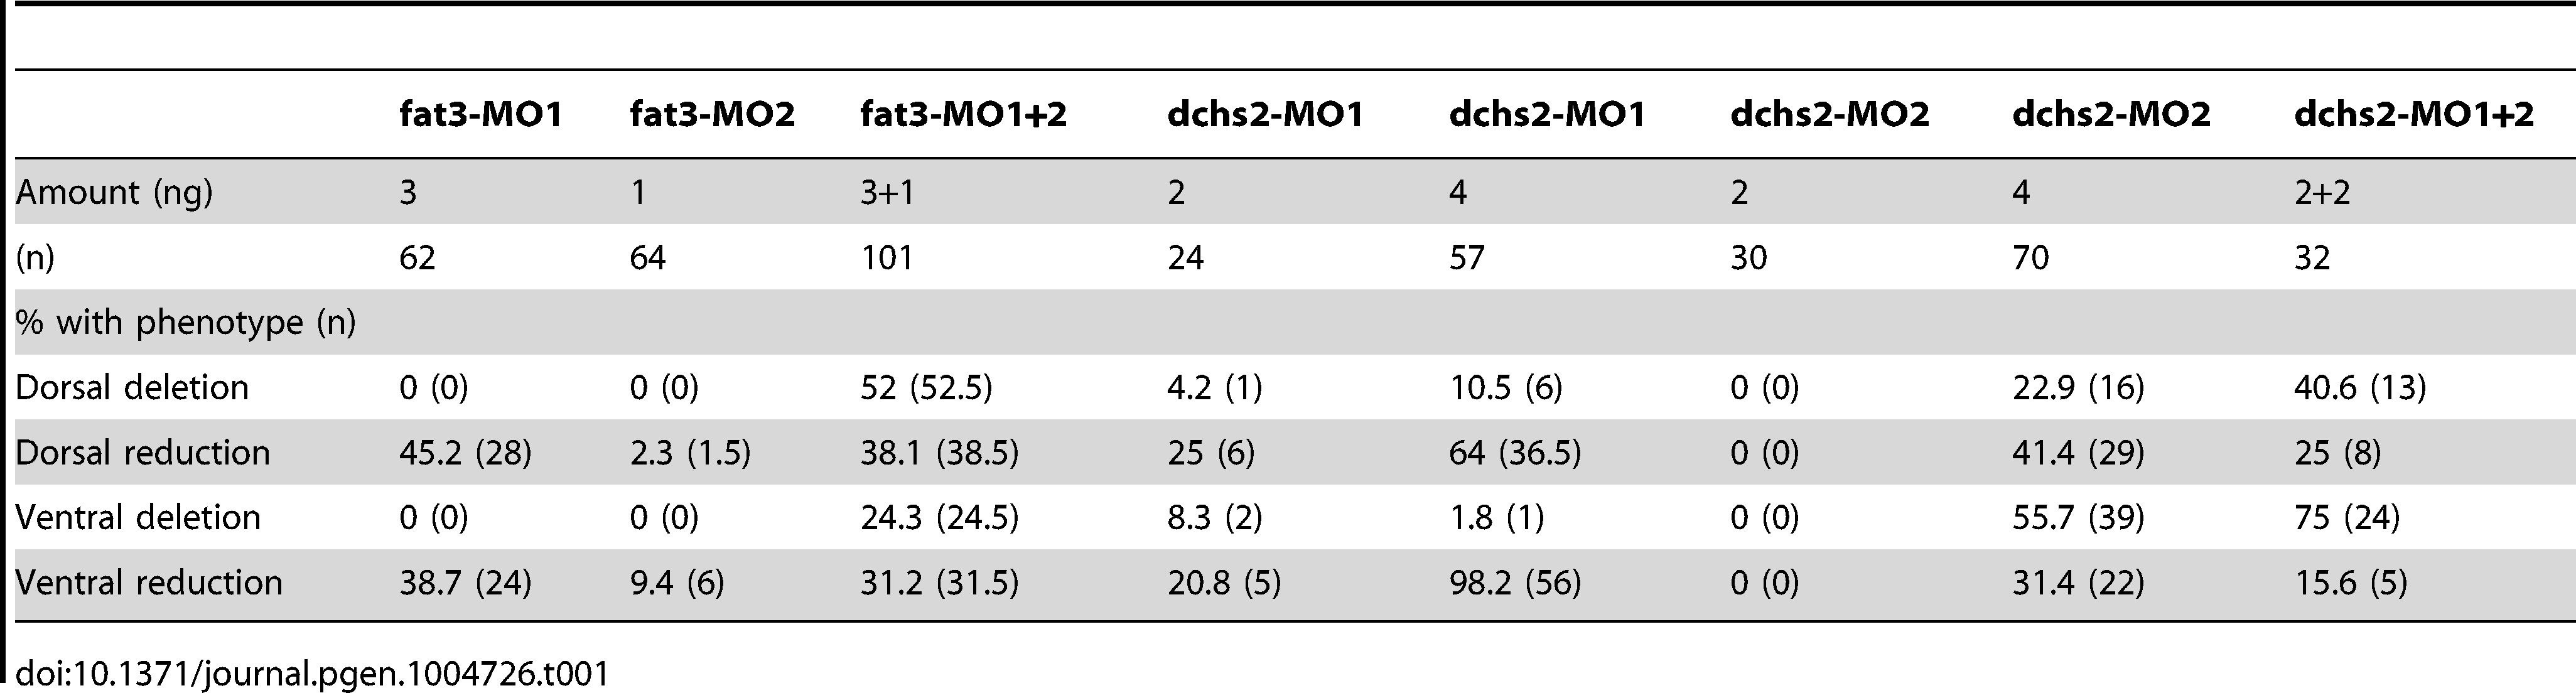 Quantification of Fat3-MO and Dchs2-MO differentiation defects.